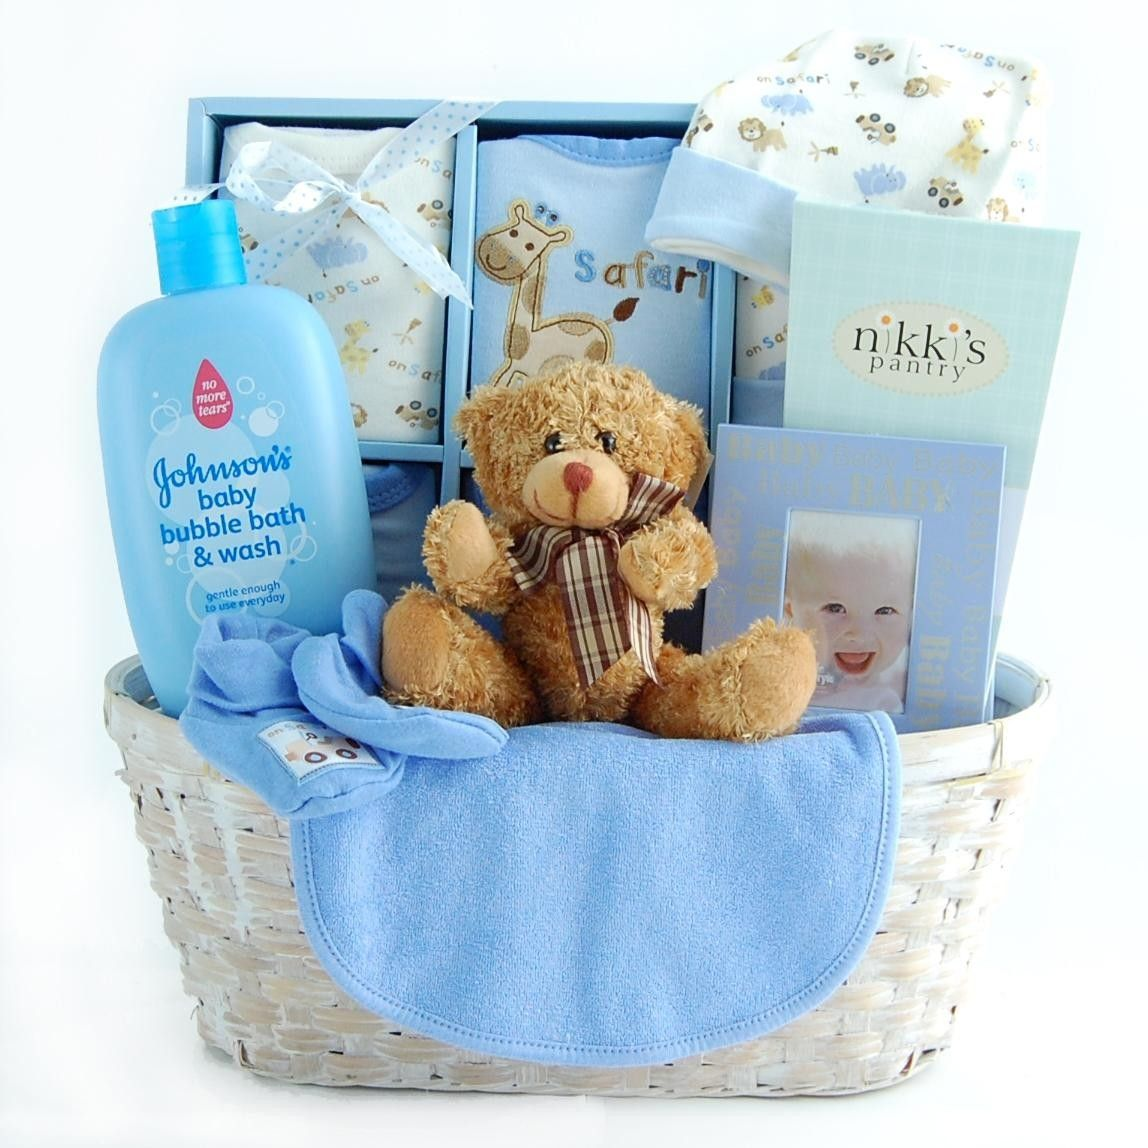 All diaper cakes welcome home baby gift basket boy 5999 http all diaper cakes welcome home baby gift basket boy 5999 http solutioingenieria Images